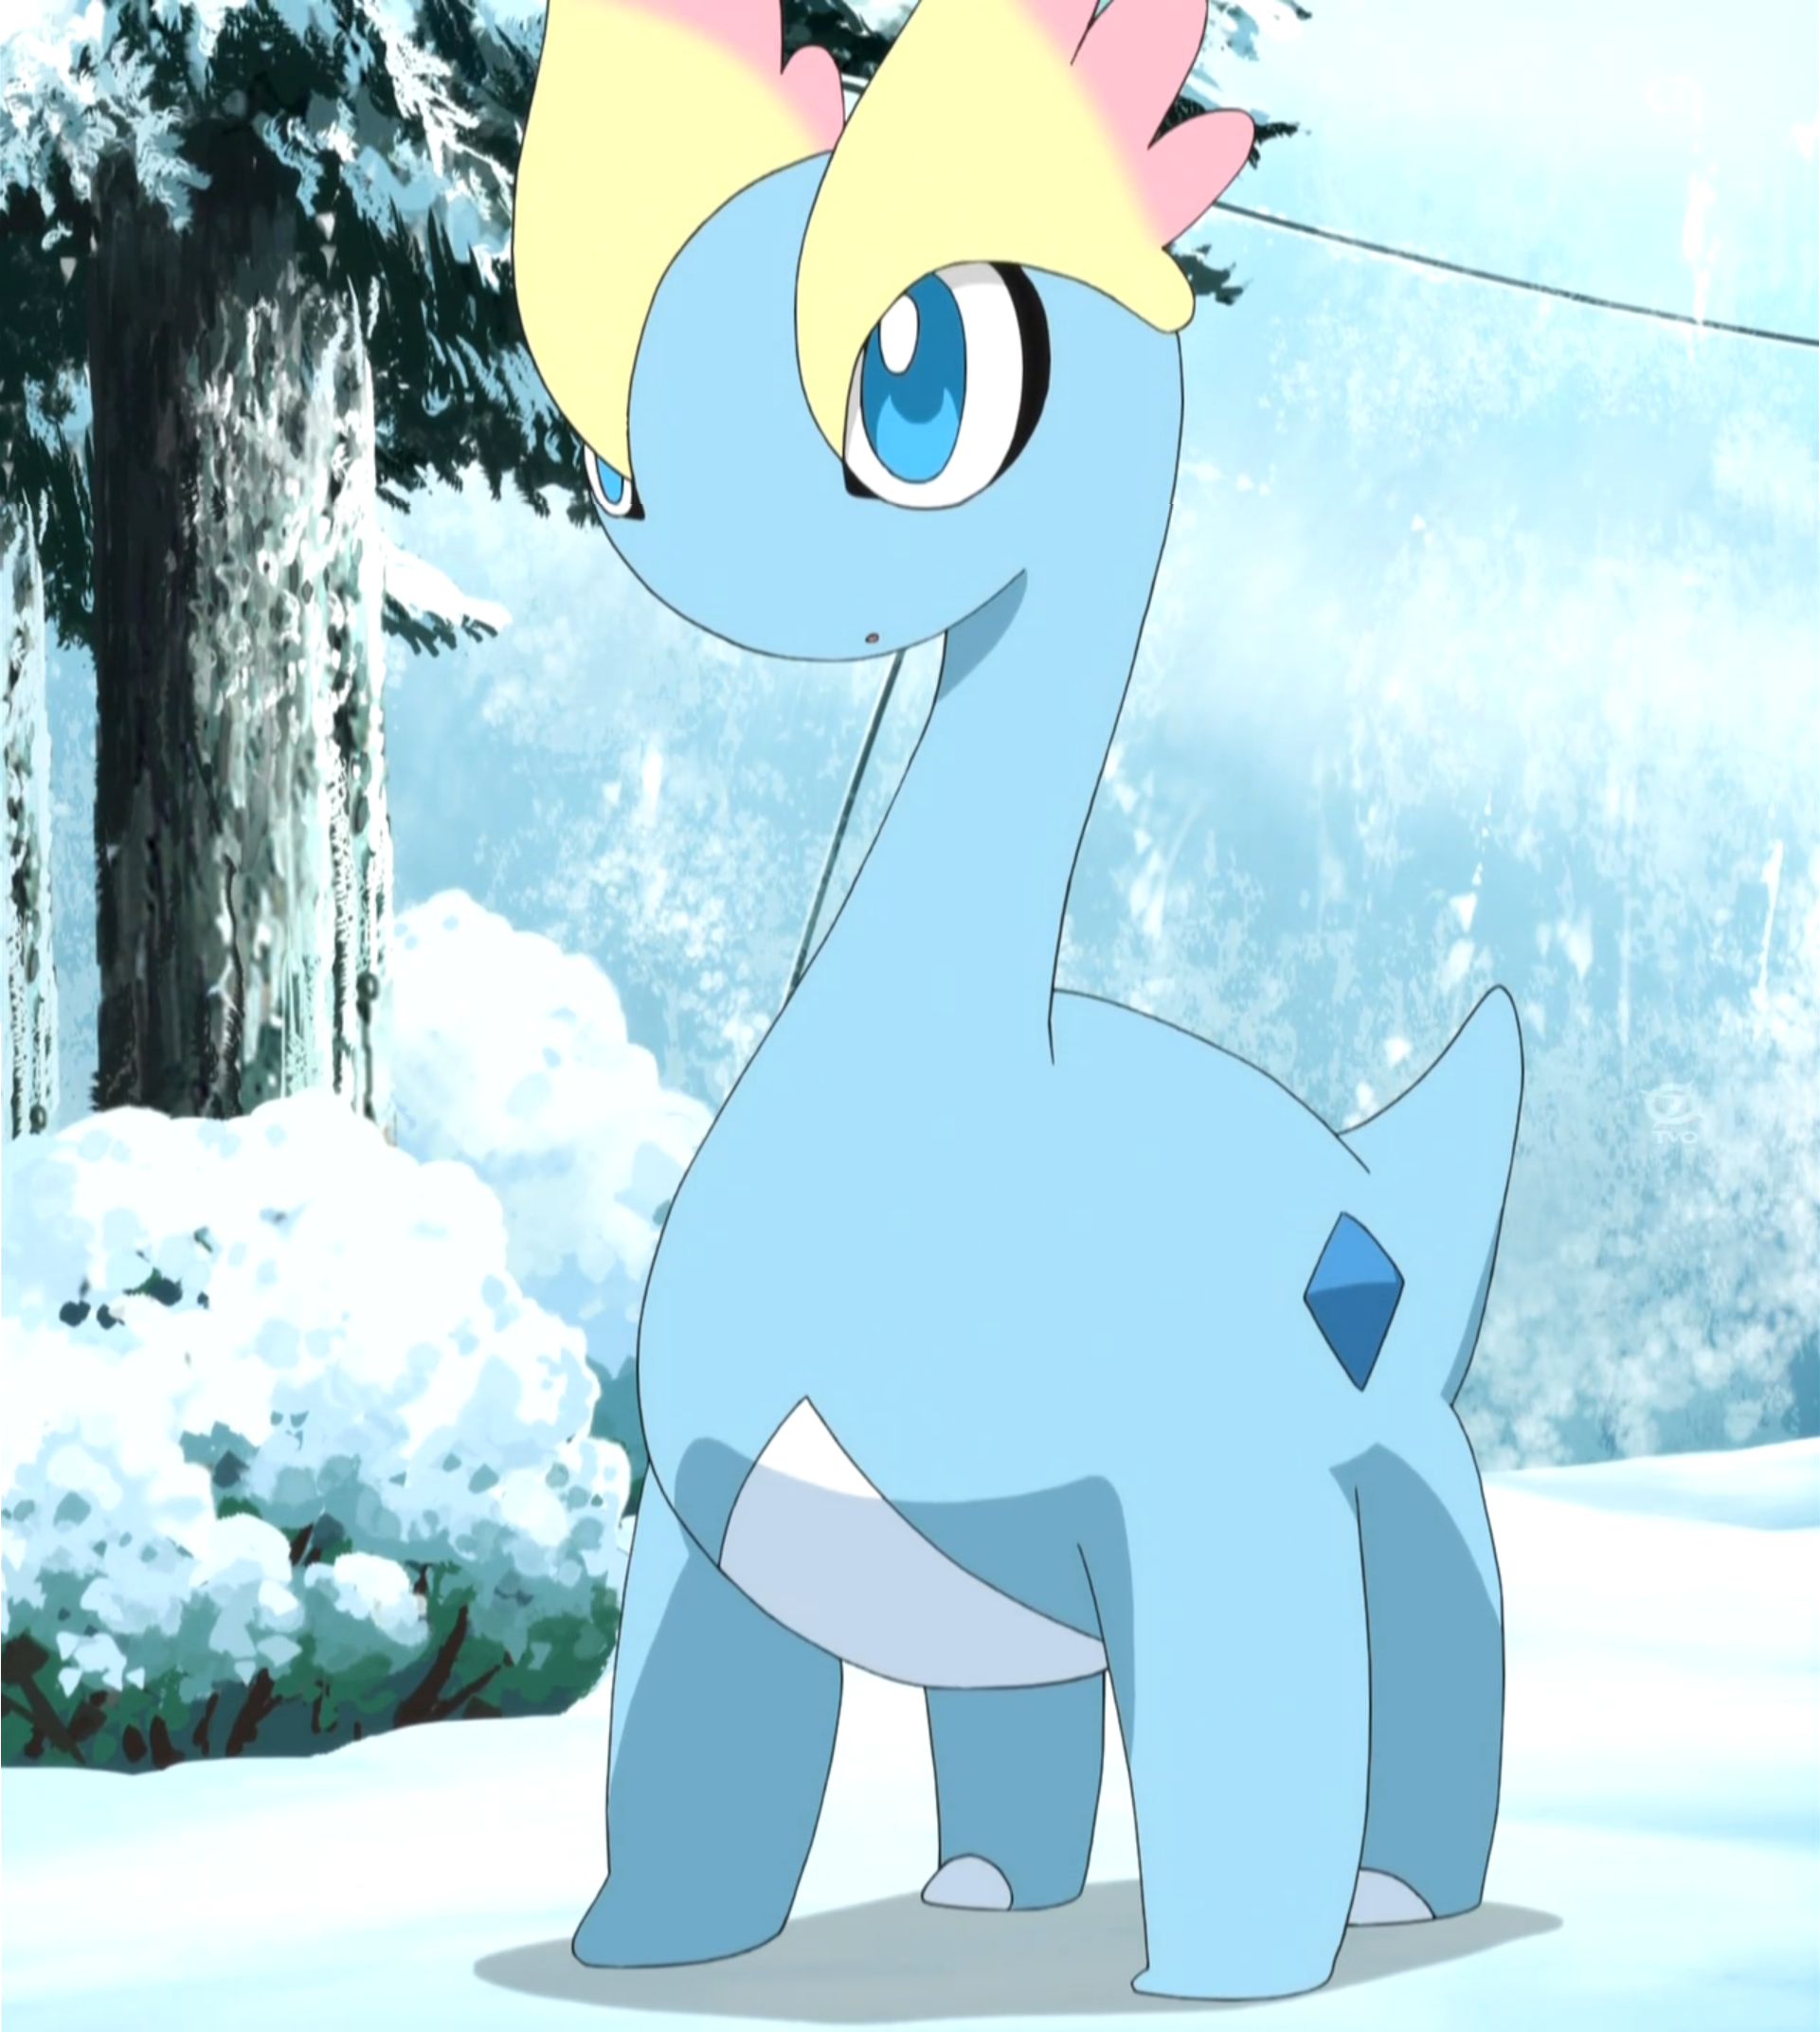 Amaura was revived from a fossil, along with Aurorus. When Team Rocket stole Amaura, Amaura emitted Aurora Borealis to led the heroes into finding it.